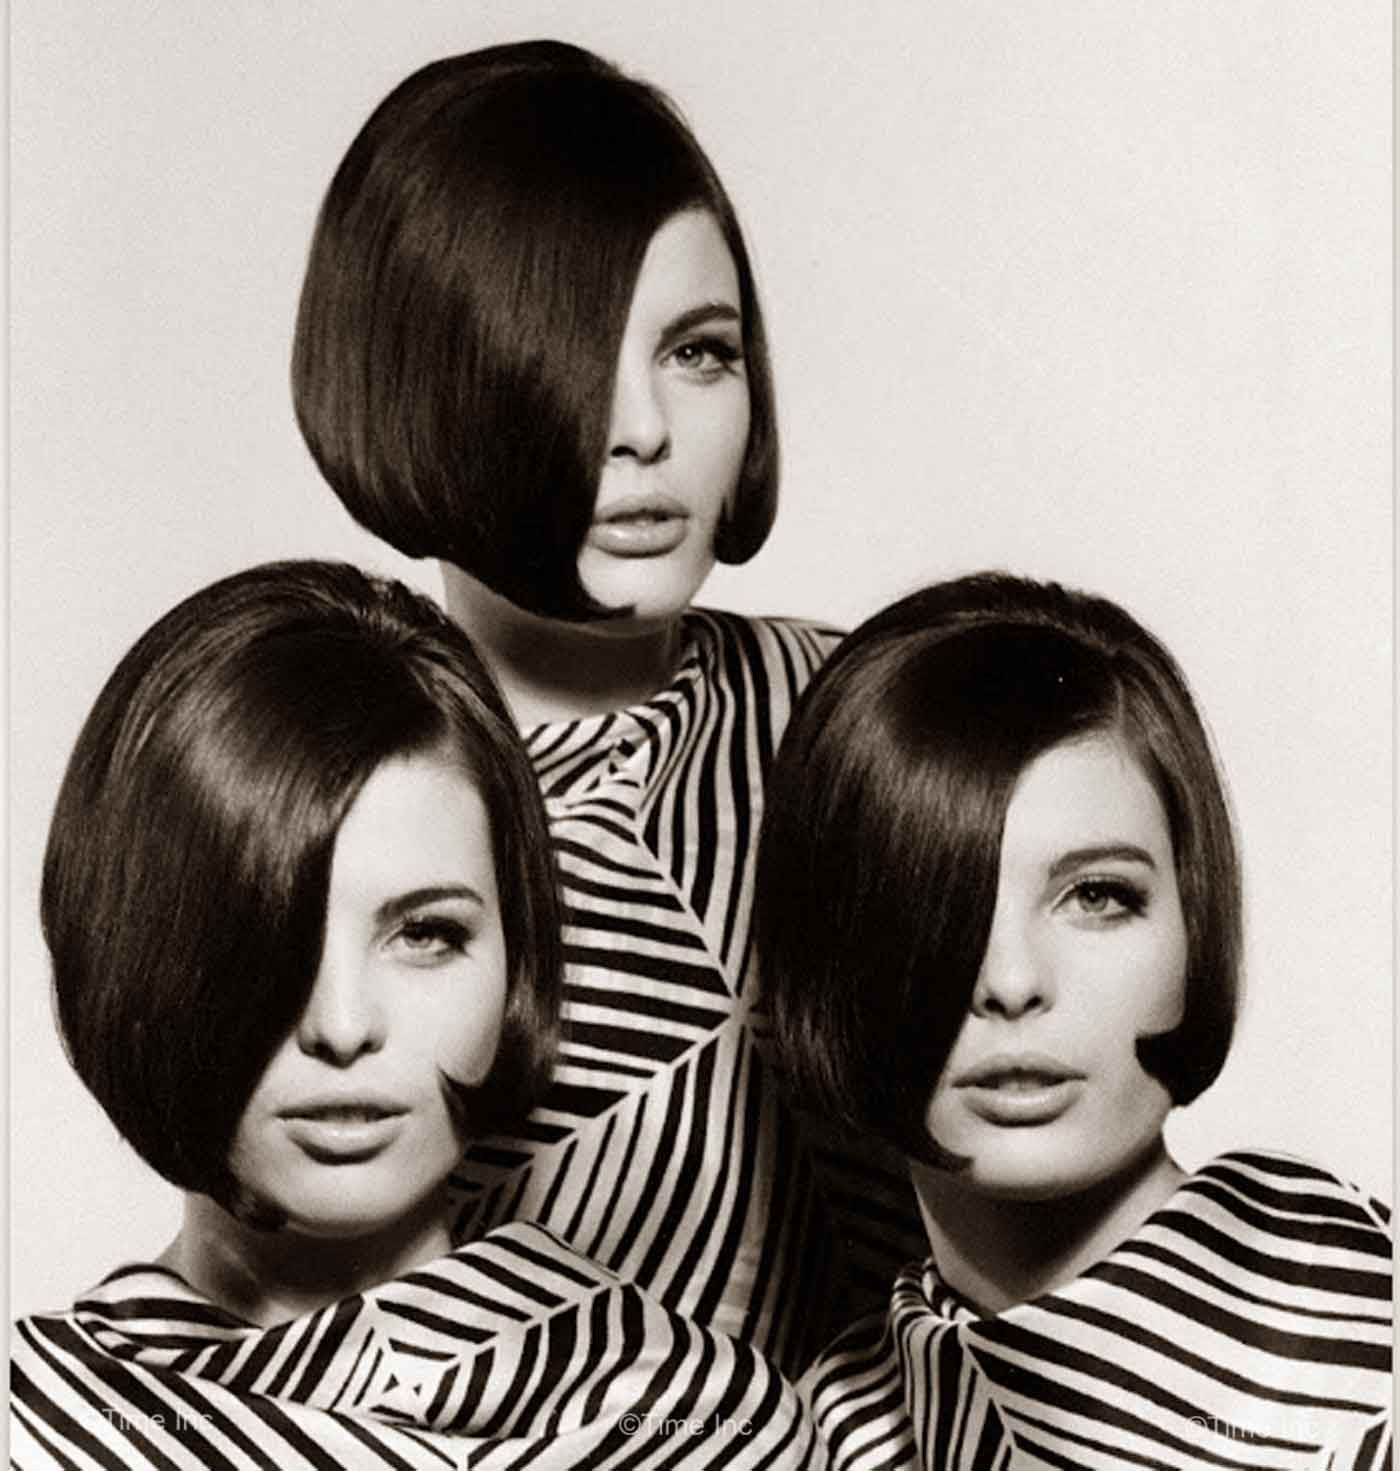 Christina--Katha-and-Megan-Dees---Sassoon-CutTriplets-1964c---Nina-Leen